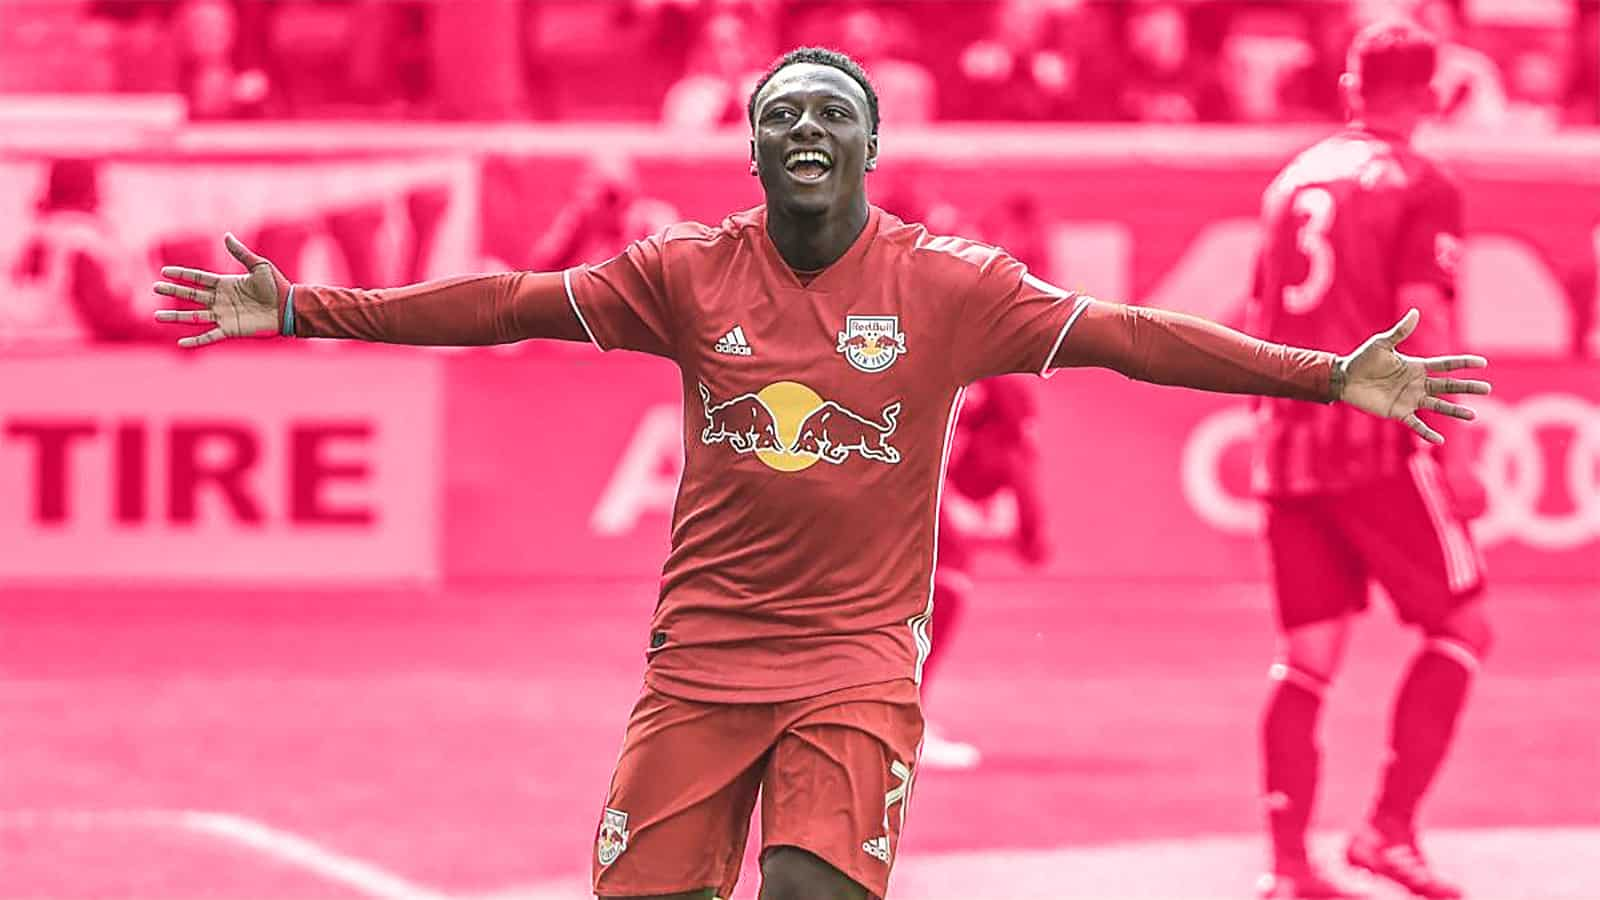 New York Red Bulls Never Let Poor Performances Shake Their Confidence